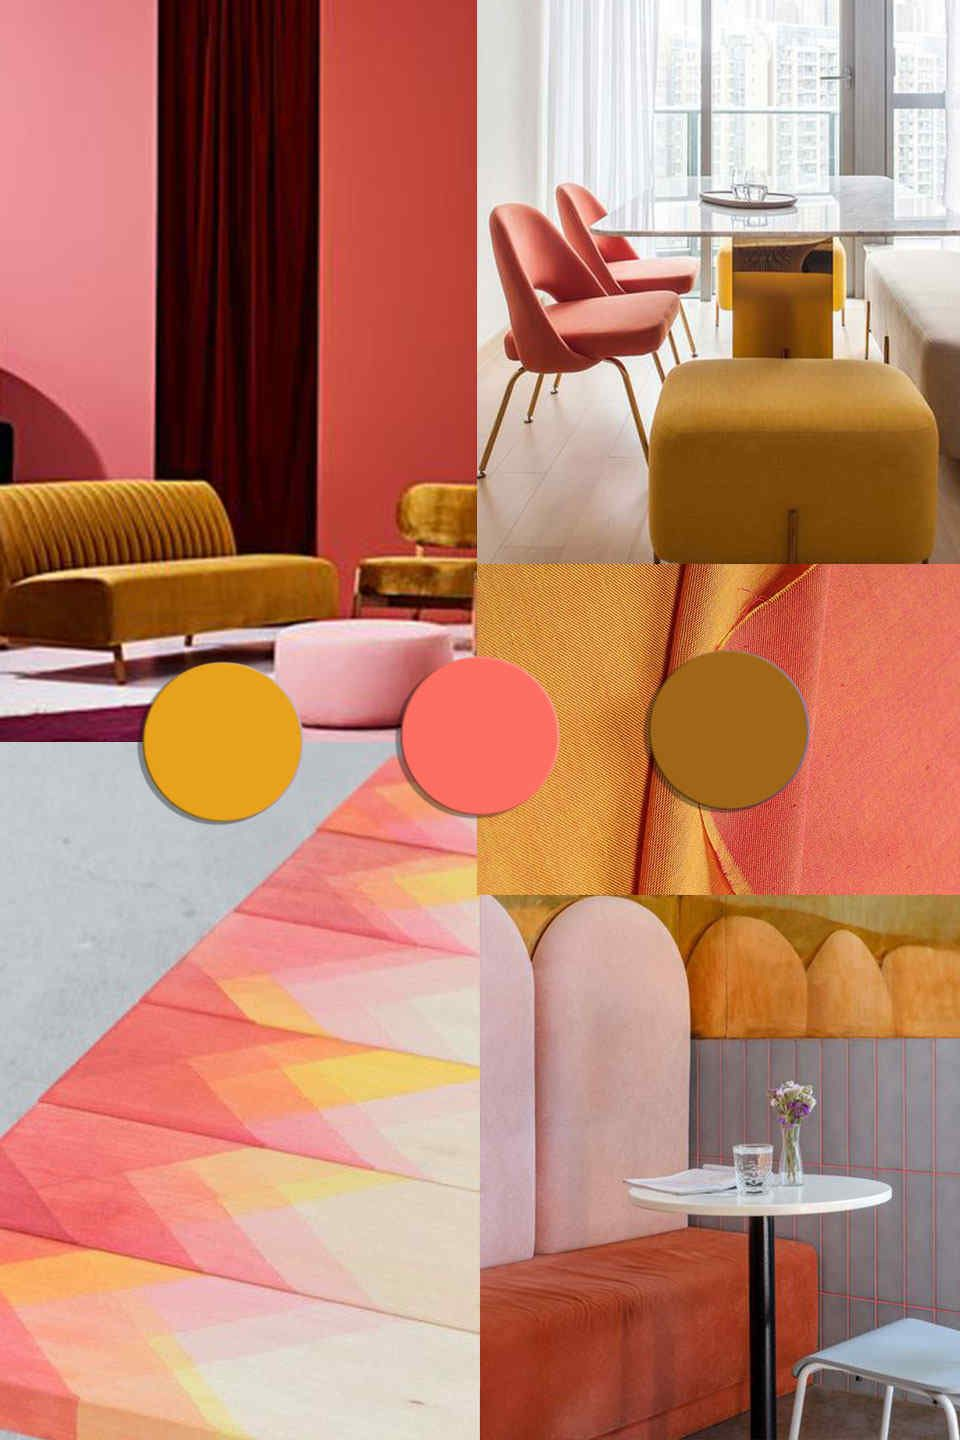 Interior Design Homes Winter 2019: COLOR TRENDS 2020 Starting From Pantone 2019 Living Coral Matches